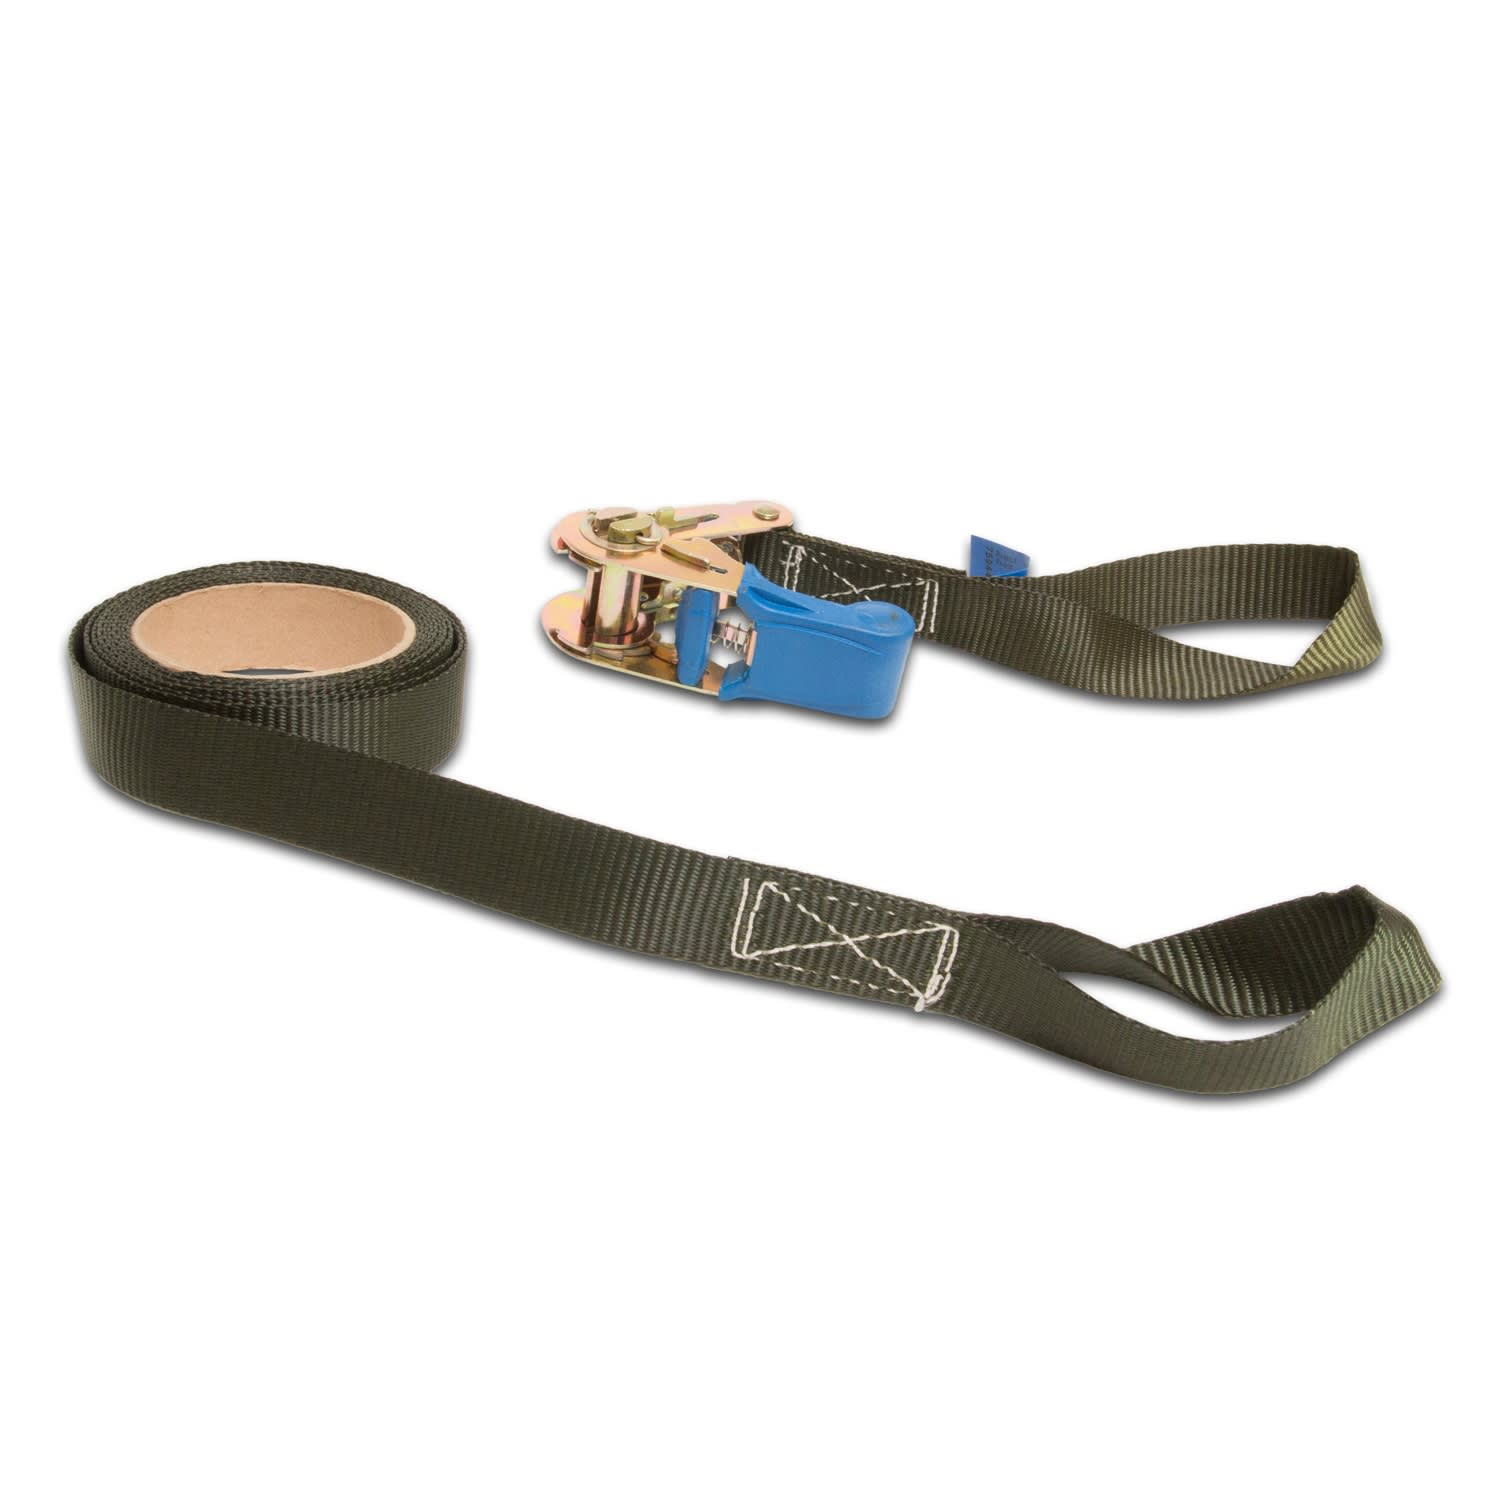 SecureTech Ratchet Strap 25mmx5m